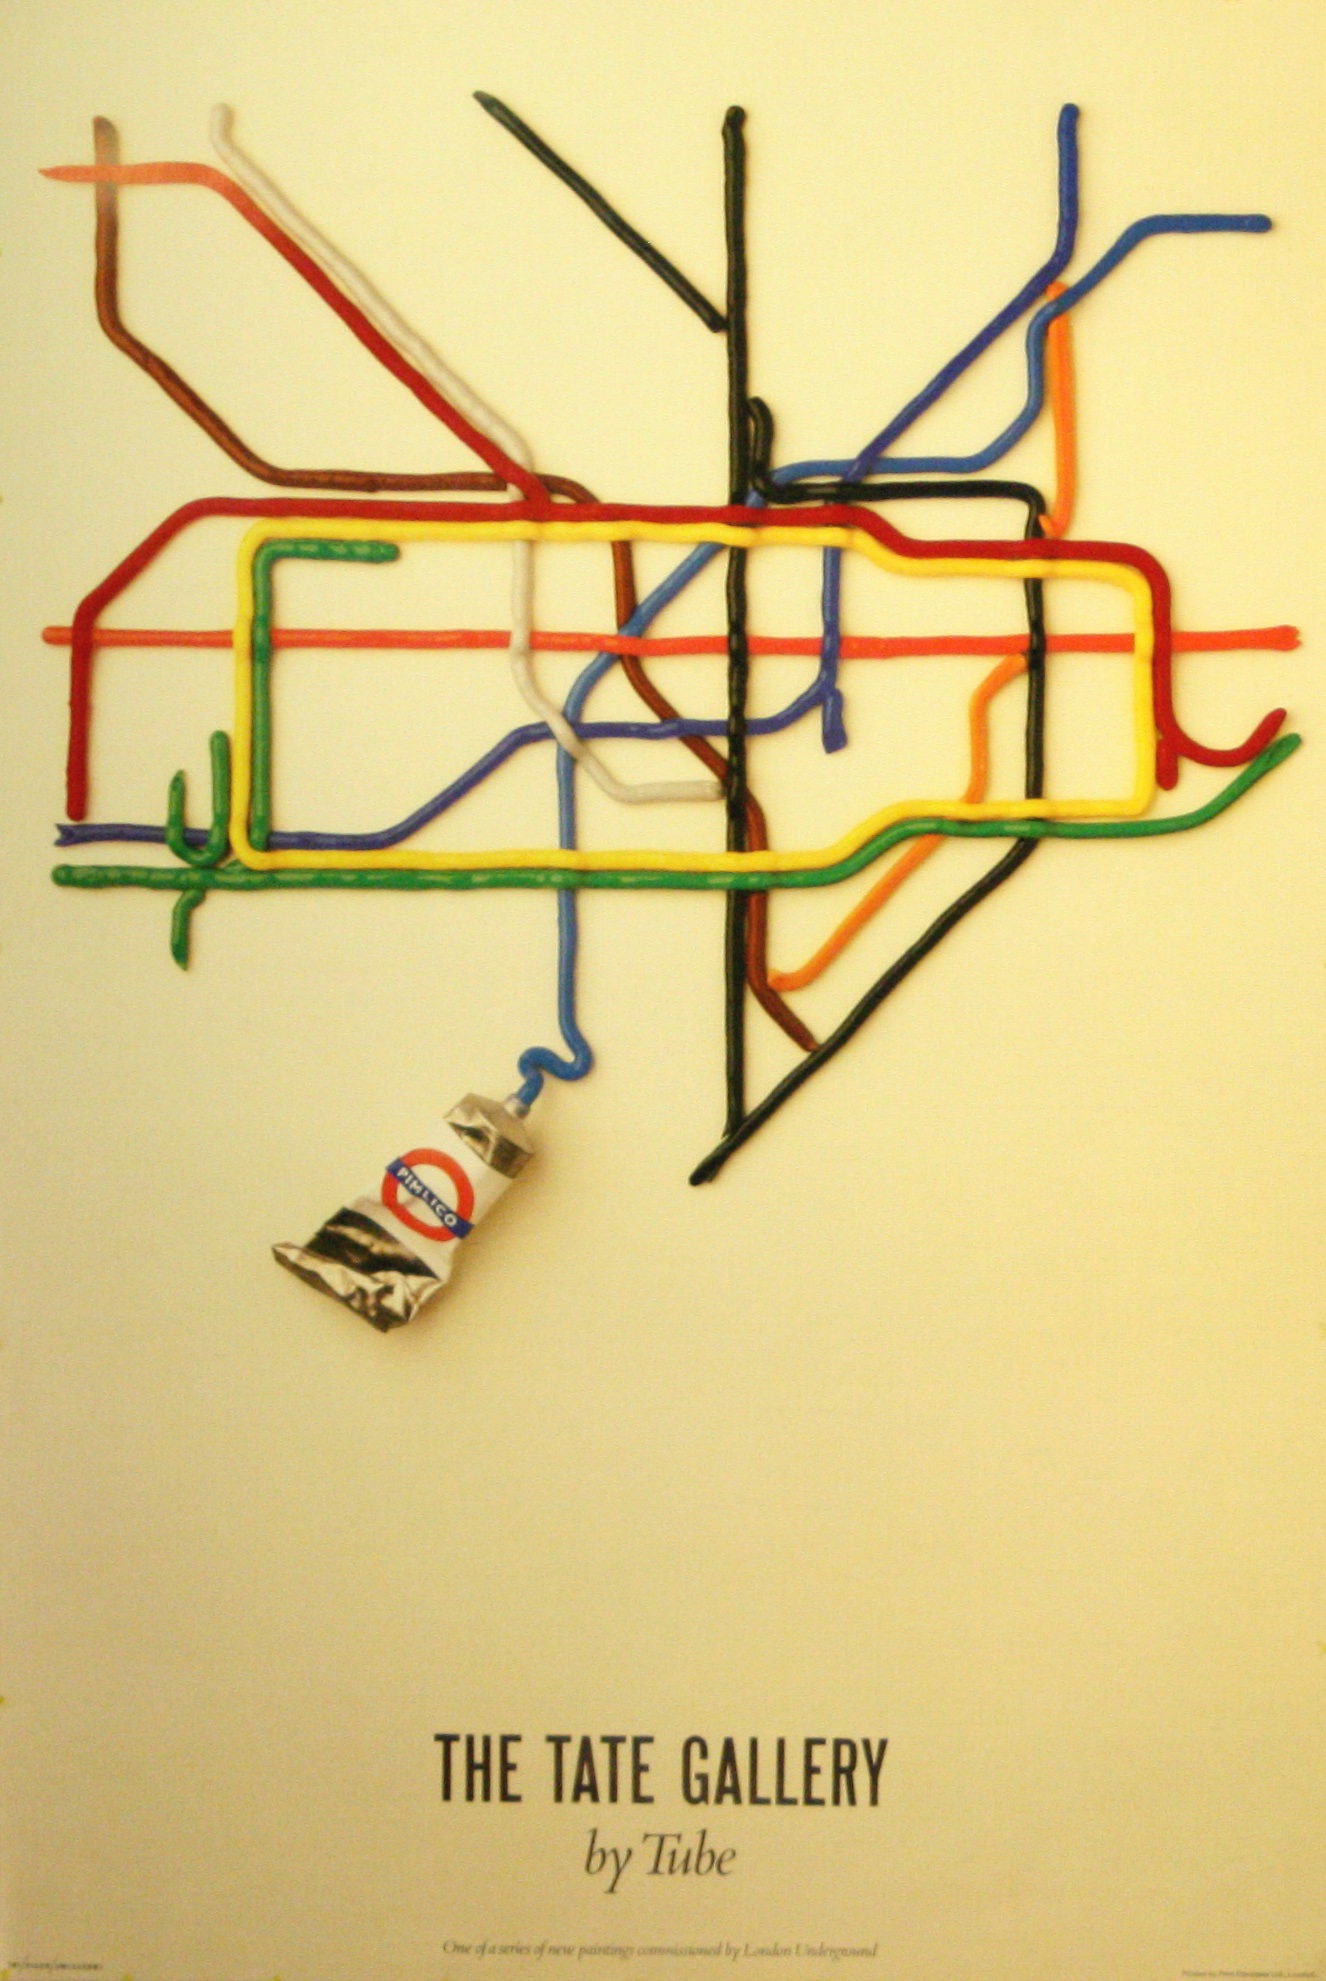 London Underground Poster Tate Gallery by Tube by David Booth Fine White Line